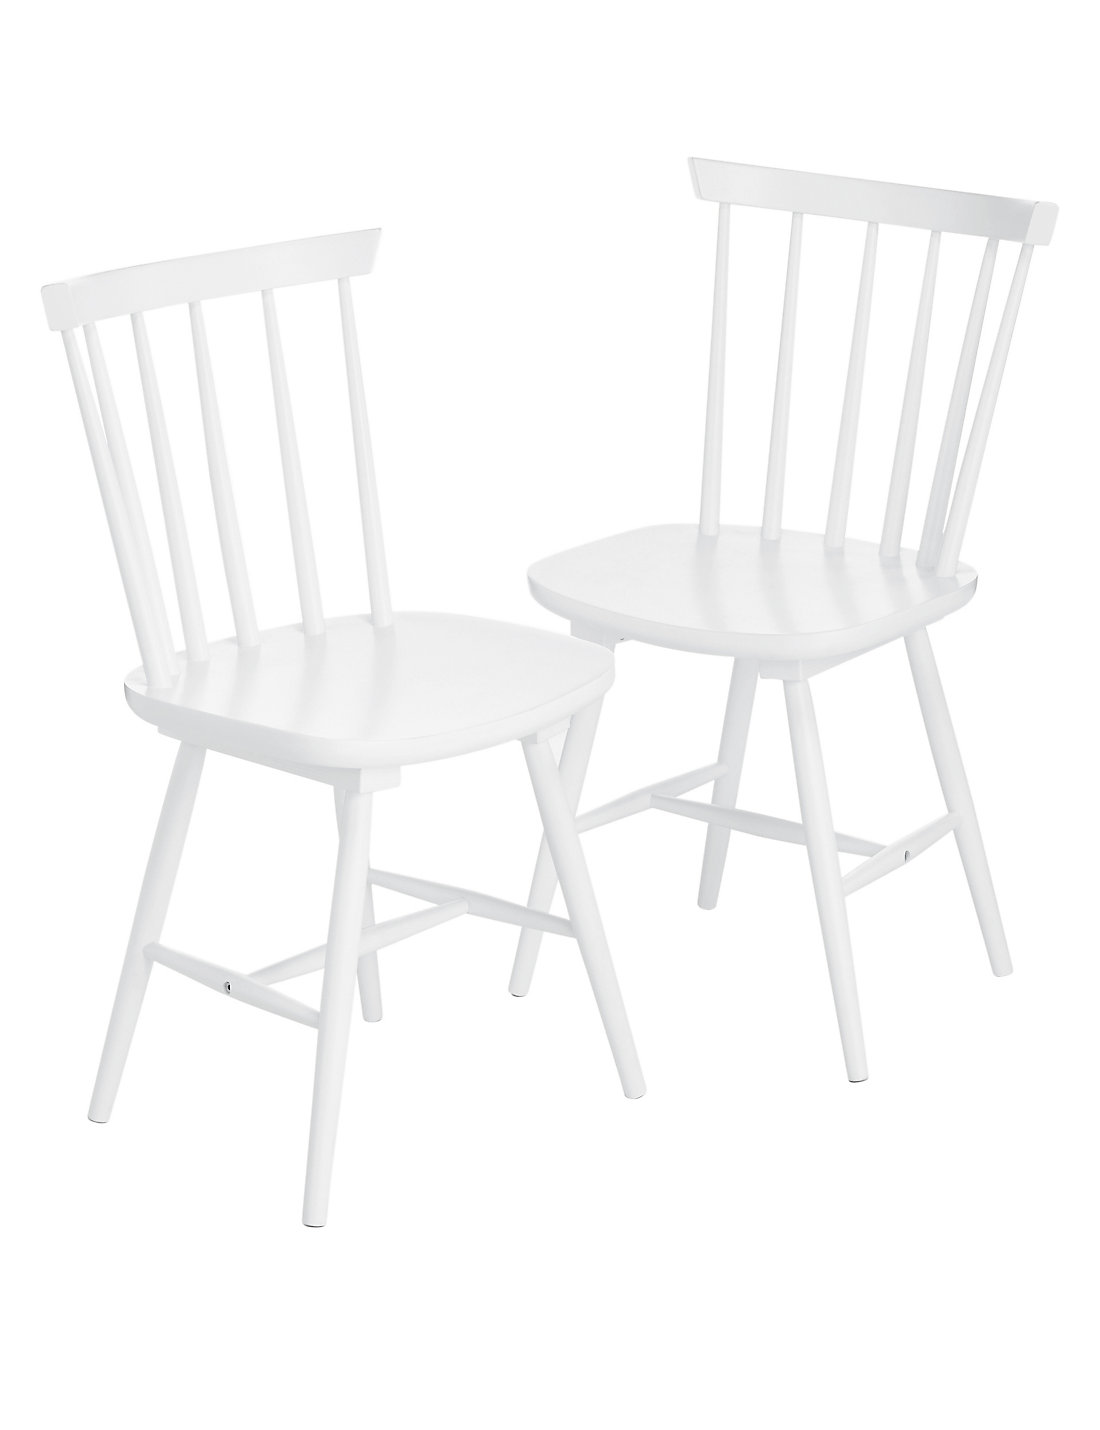 dinton white chairs  ms -  dinton white chairs